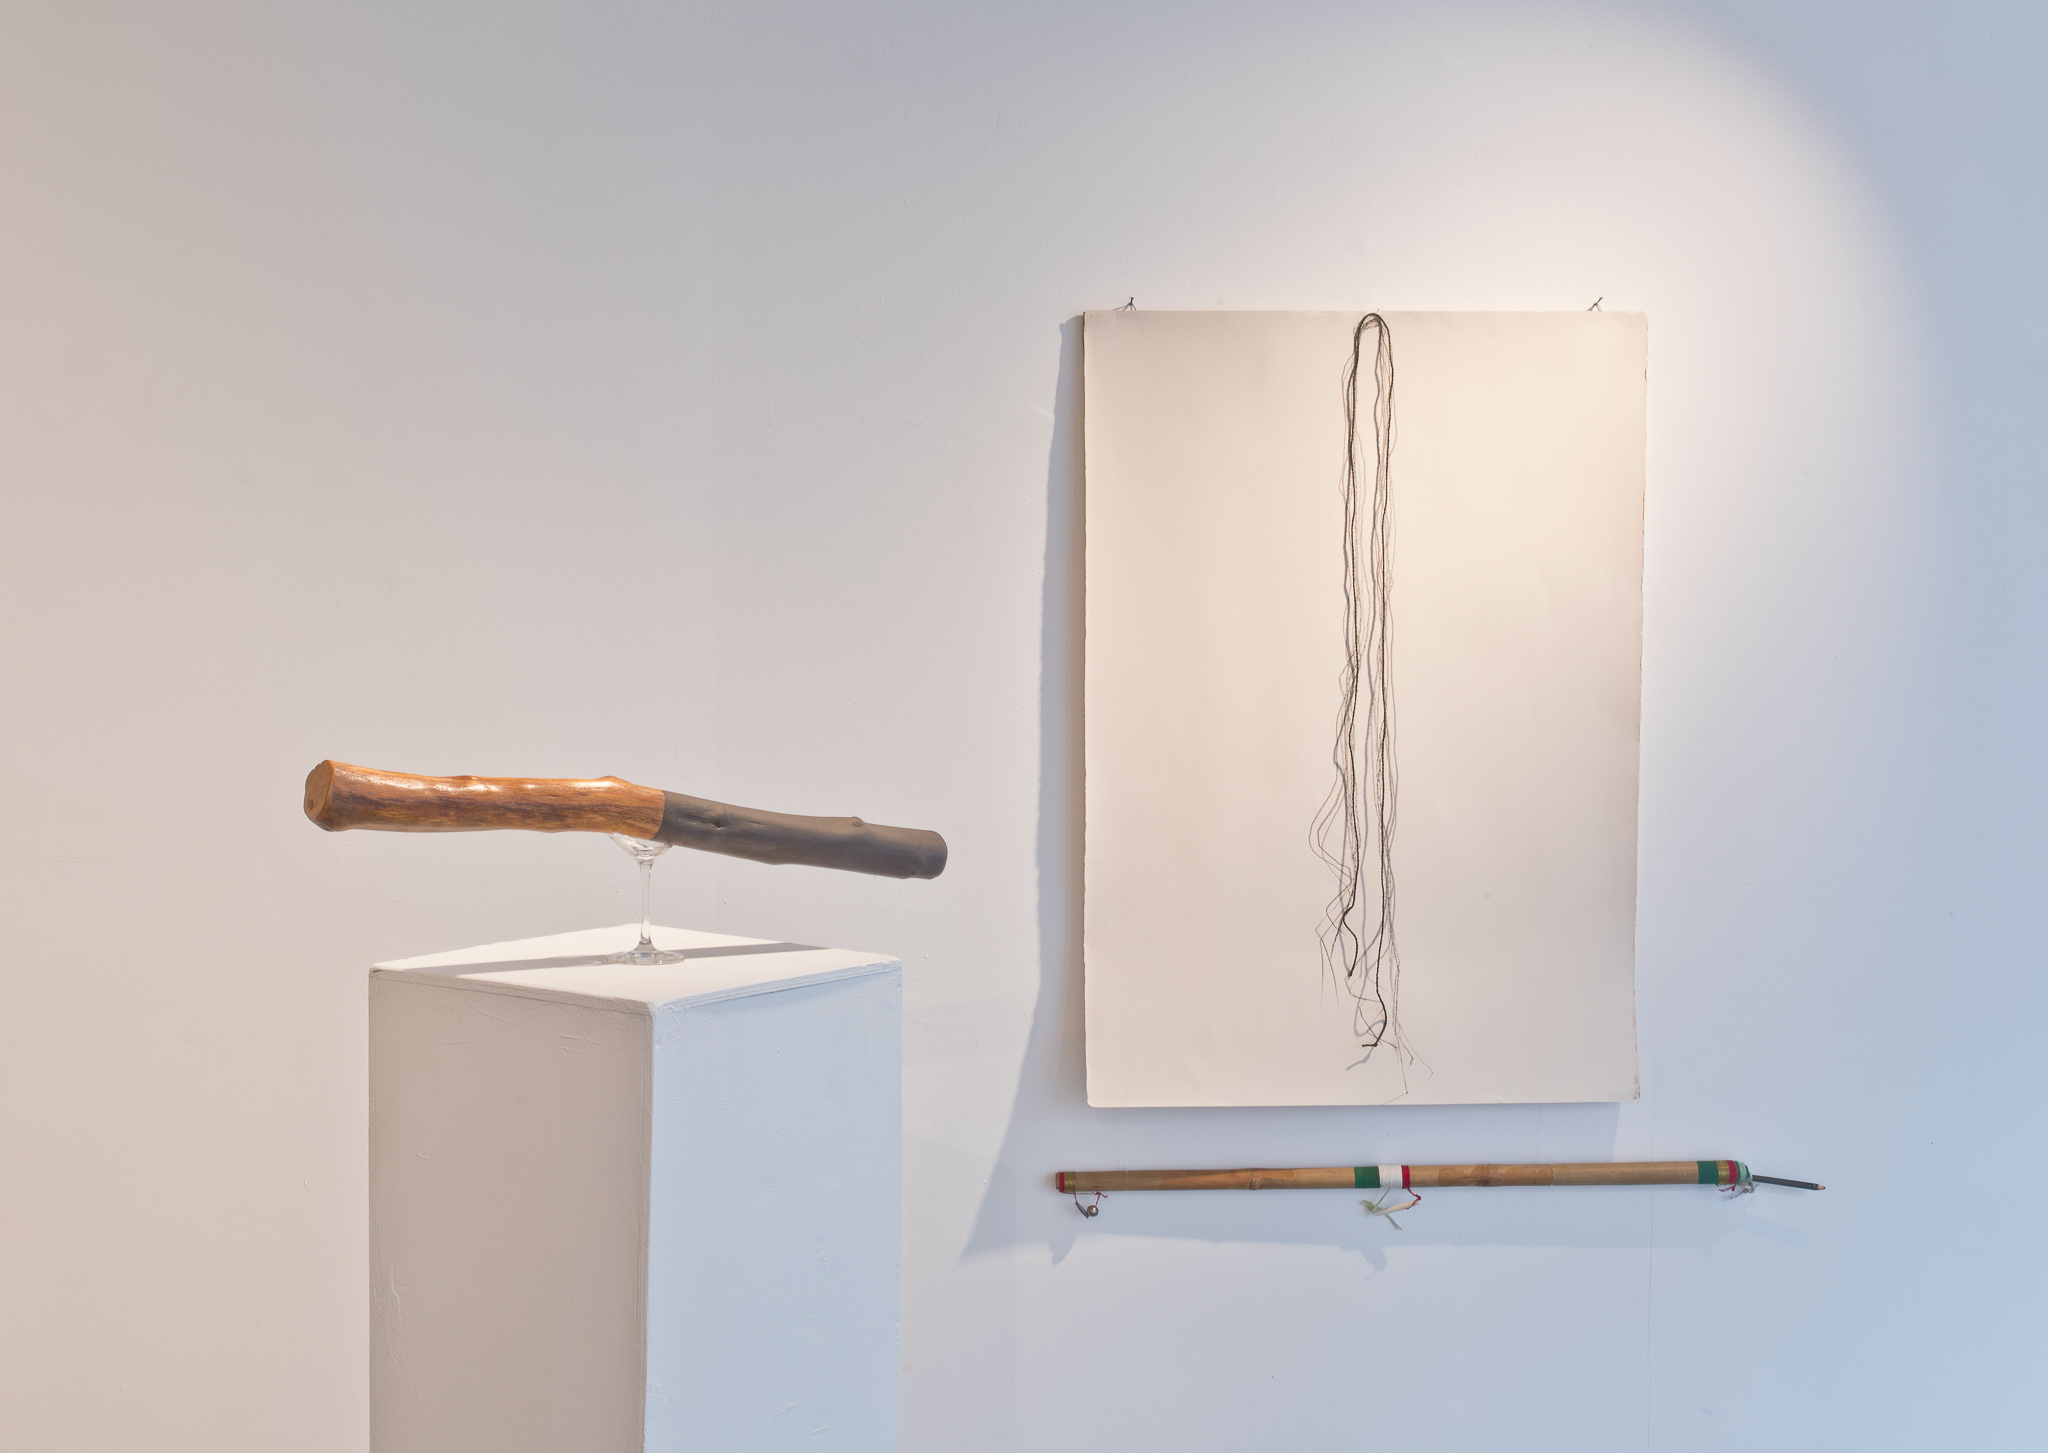 Therry Rudin, The Promise, 2020 - wood, pigment, glass - 17x64x8 - POA/ Therry Rudin, The Tracing, 2020 - Charcoal on watercolour paper, wood & mixed media - 112x89cm - POA